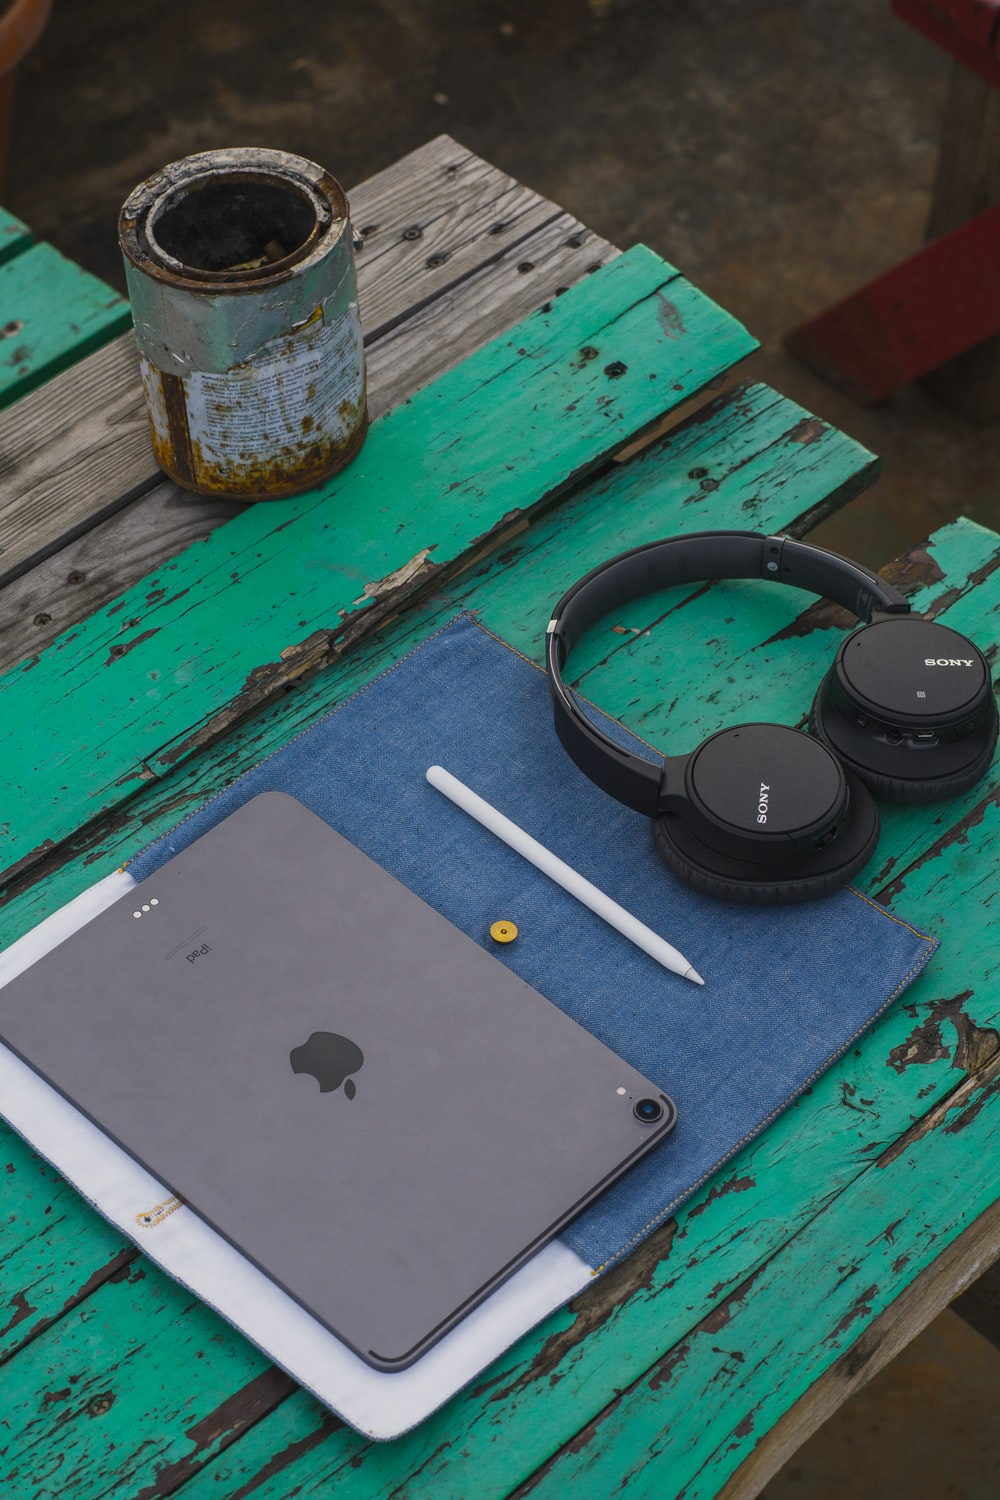 black cordless headphones beside iPad on green table